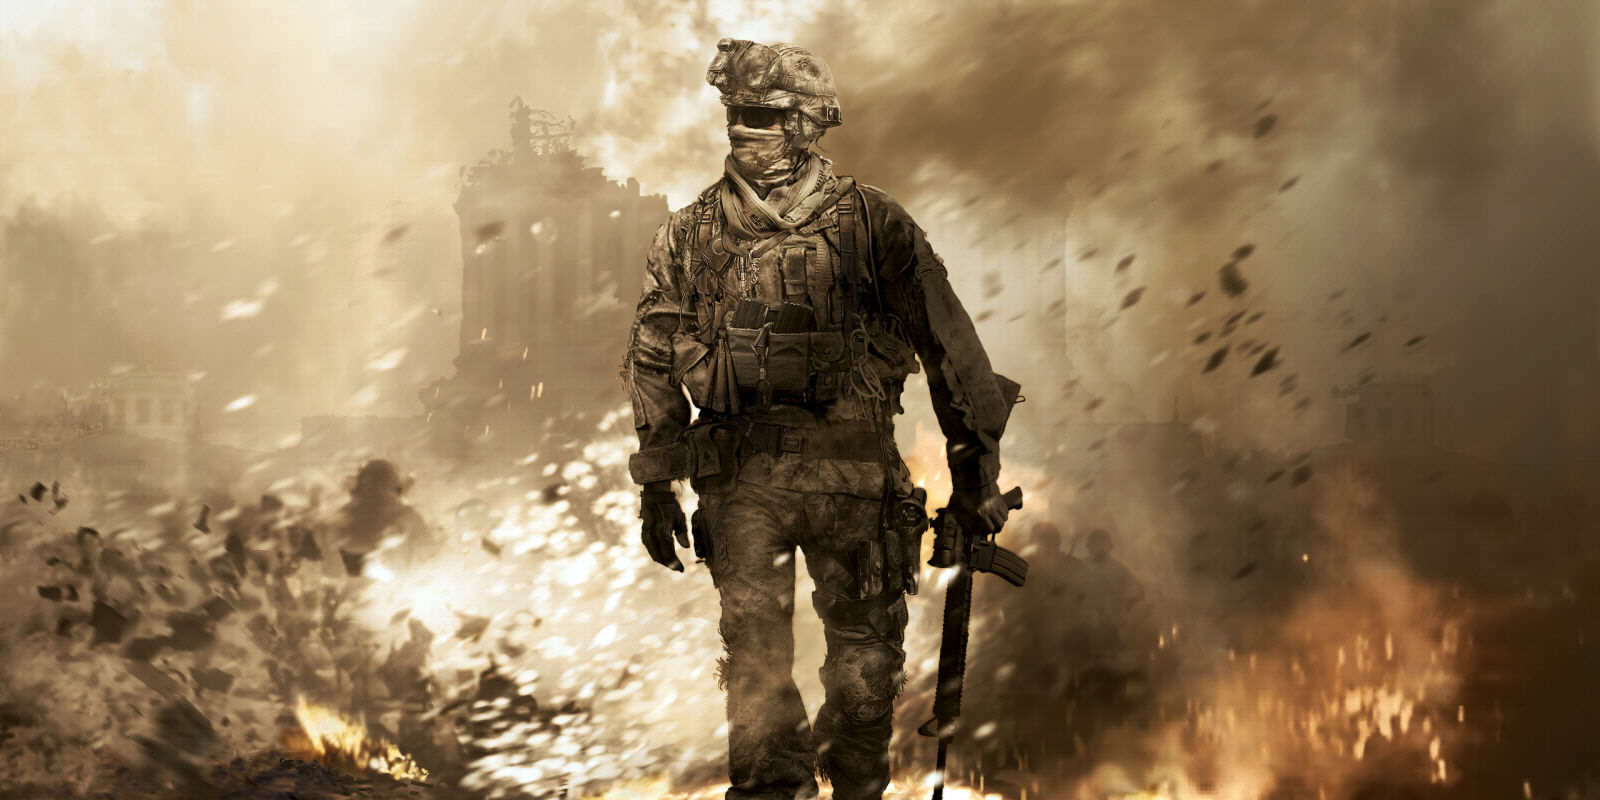 Call Of Duty Nearly Adopted A Very Different Setting landscape 1456759219 14993 call of duty 4 modern warfare game desktop wallpaper 2560x1600